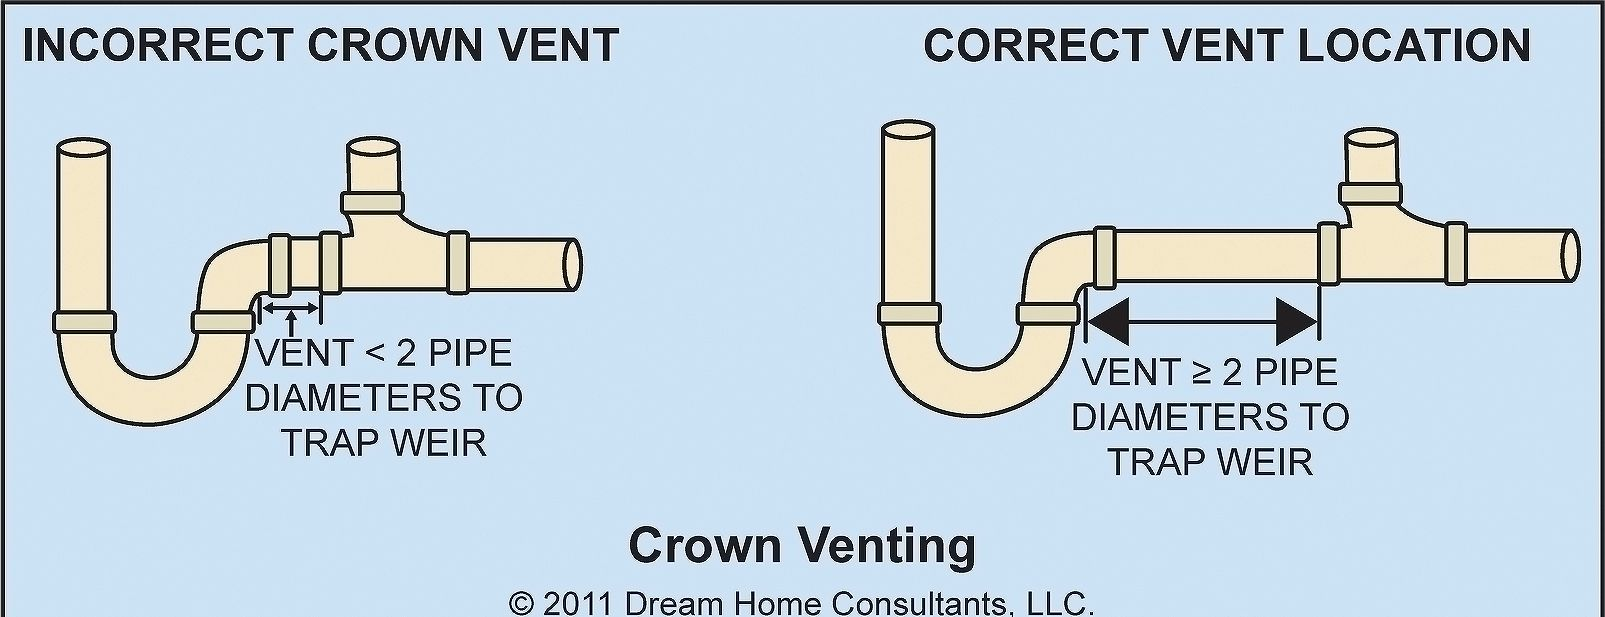 Crown Venting Bs Pinterest Plumbing Vent And Kitchen 20 Amp Outlet On 15 Circuit Internachi Inspection Forum Sink Outdoor Island Decor